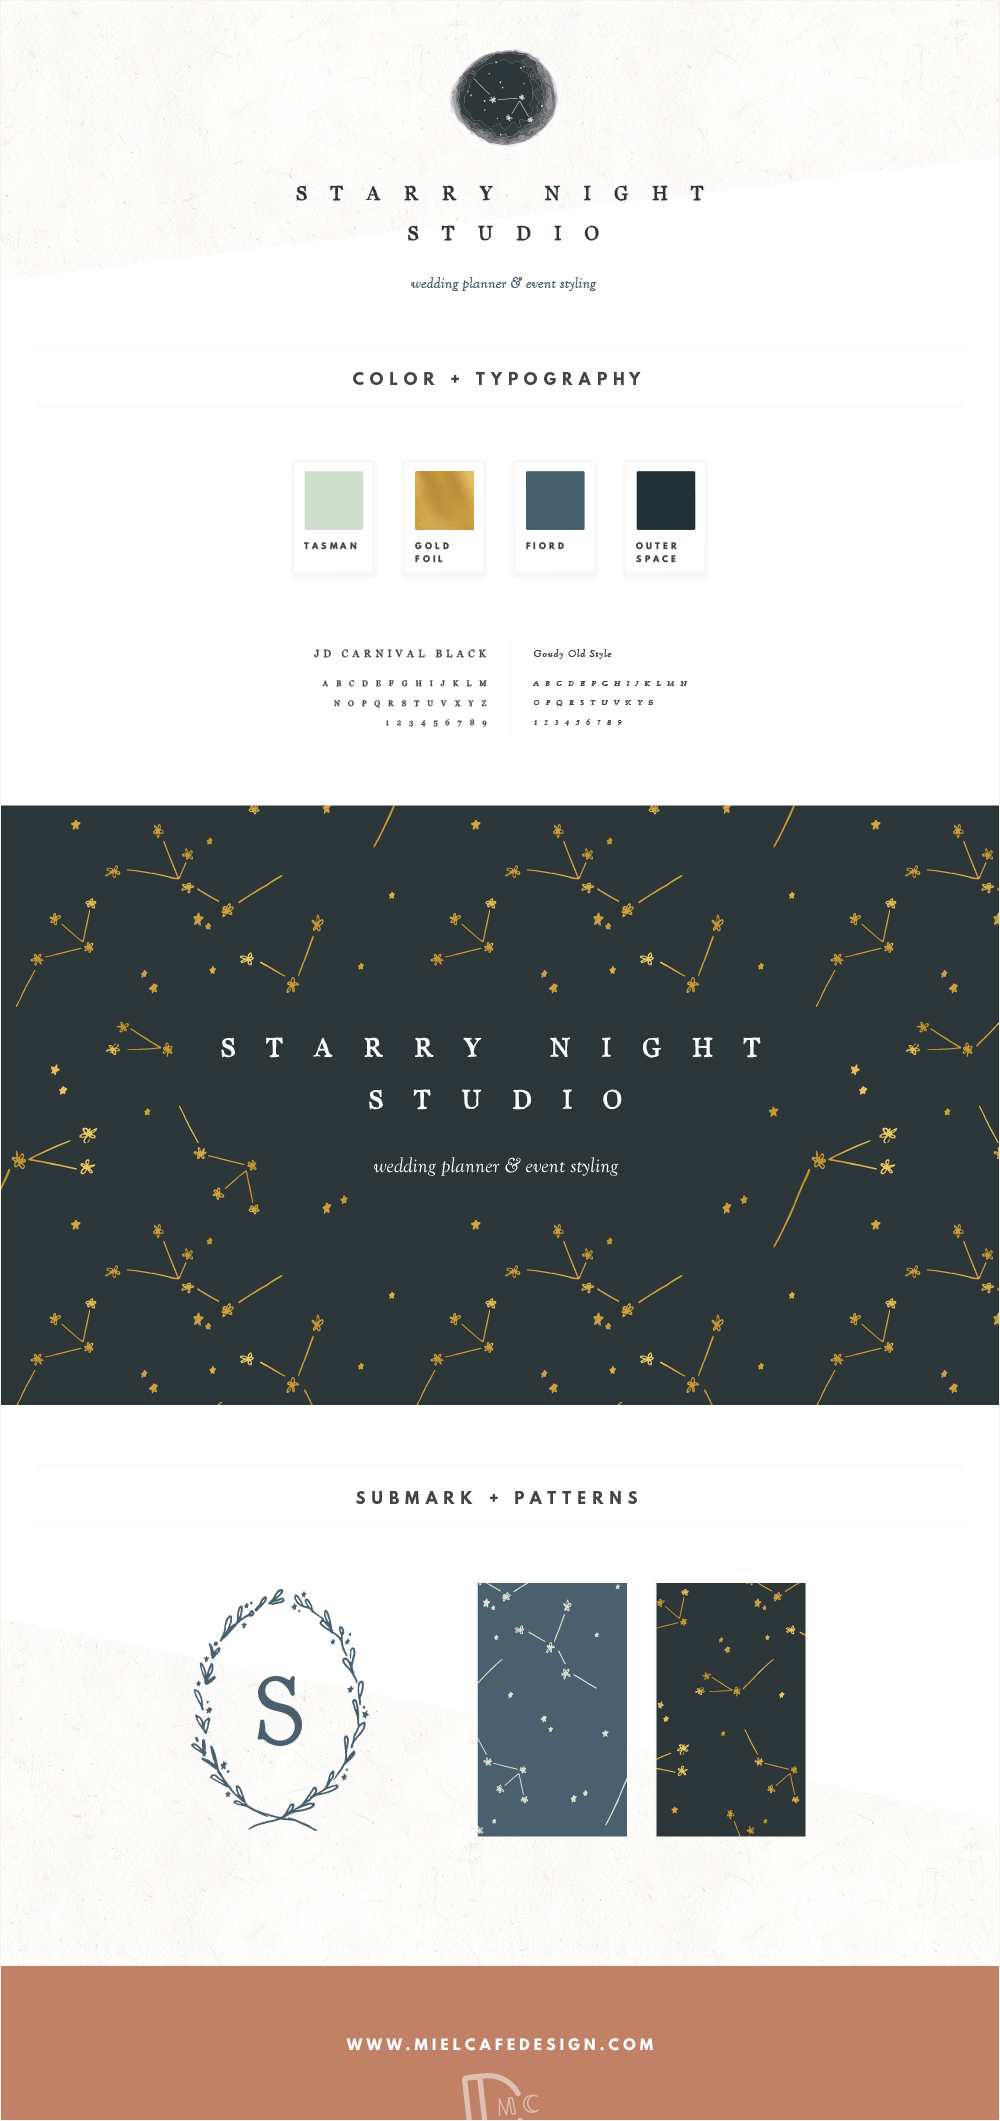 Starry Night Studio Wedding Planner Brand Identity Custom Logo Design